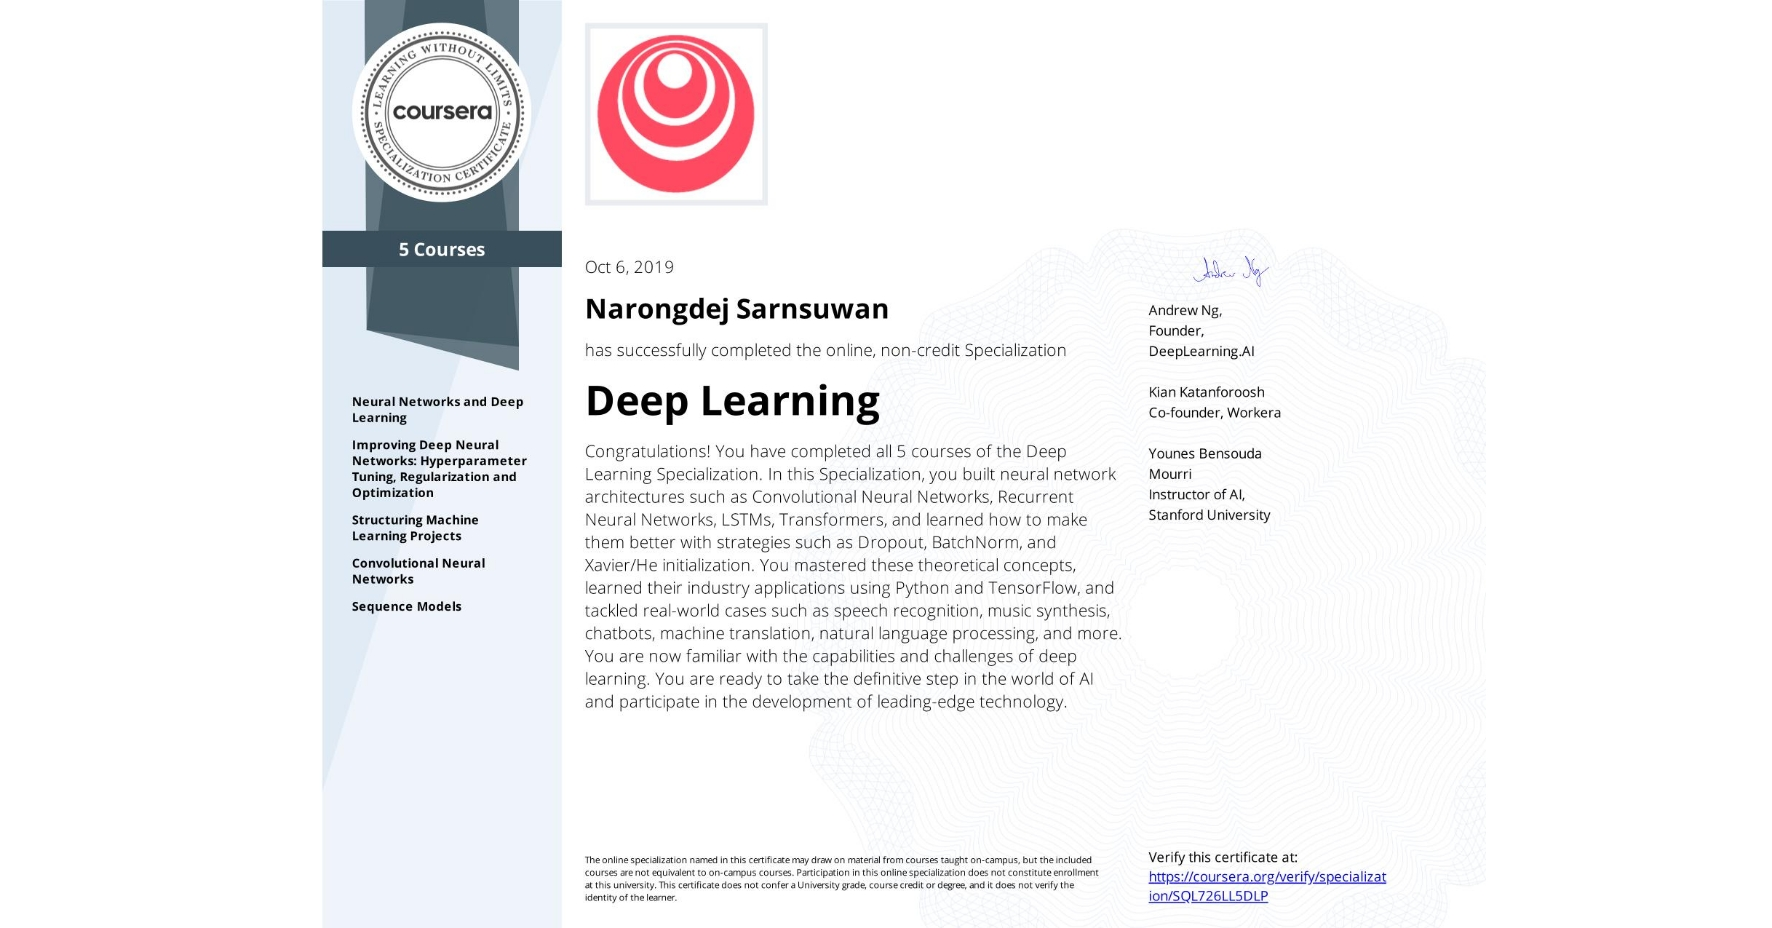 View certificate for Narongdej Sarnsuwan, Deep Learning, offered through Coursera. Congratulations! You have completed all five courses of the Deep Learning Specialization.  In this Specialization, you built neural network architectures such as Convolutional Neural Networks, Recurrent Neural Networks, LSTMs, Transformers and learned how to make them better with strategies such as Dropout, BatchNorm, Xavier/He initialization, and more. You mastered these theoretical concepts and their application using Python and TensorFlow and also tackled real-world case studies such as autonomous driving, sign language reading, music generation, computer vision, speech recognition, and natural language processing.   You're now familiar with the capabilities, challenges, and consequences of deep learning and are ready to participate in the development of leading-edge AI technology.